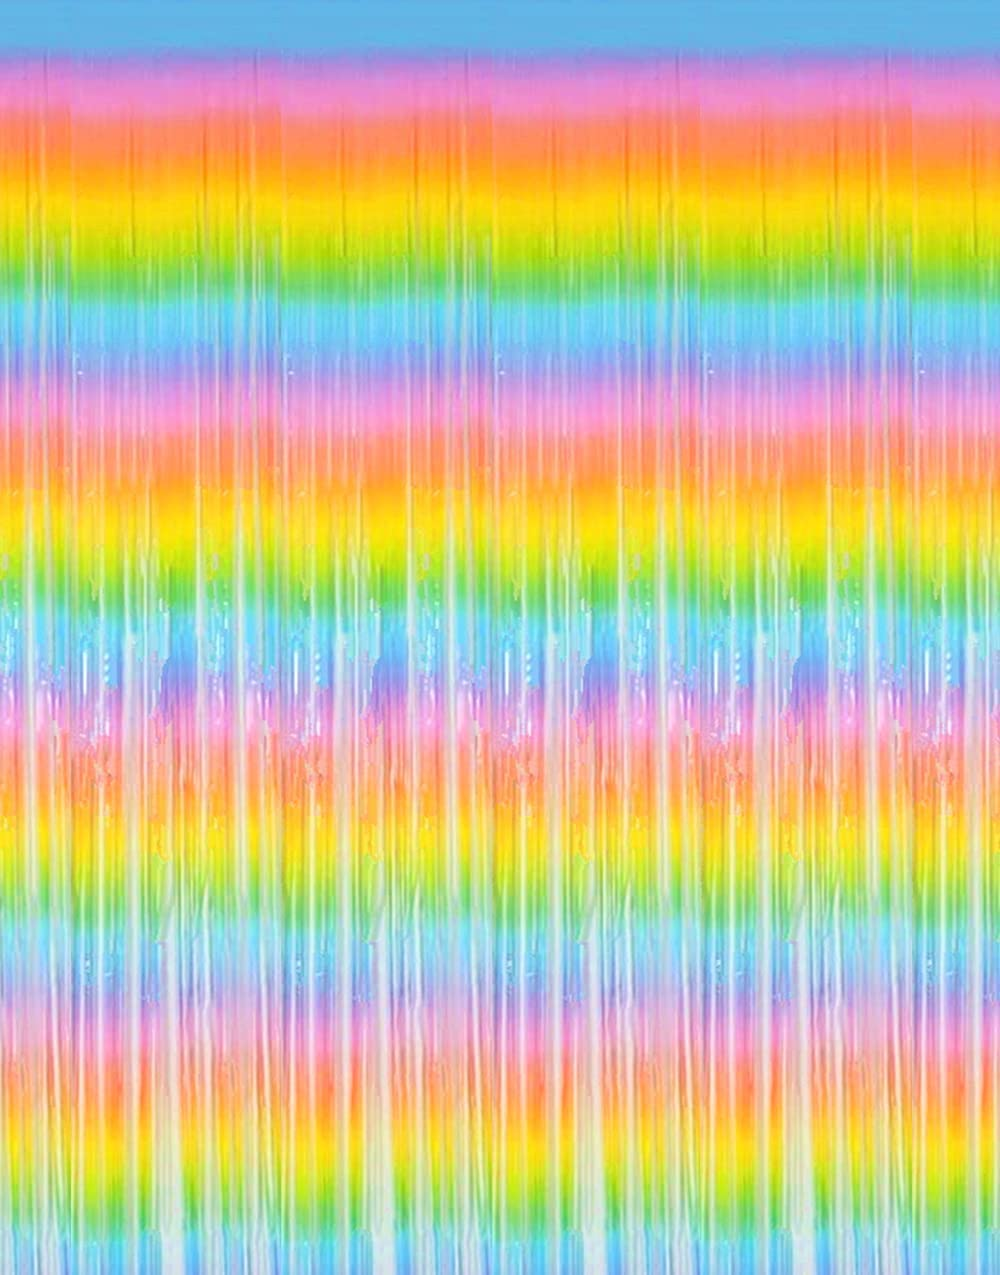 Shiny Rainbow Foil Fringe Curtains 2 Pack 3.2x 8.2 feet Metallic Tinsel Rainbow Streamers for Photo Booth Backdrop Birthday Wedding Holiday Celebration Bachelorette Party Streamers Decorations